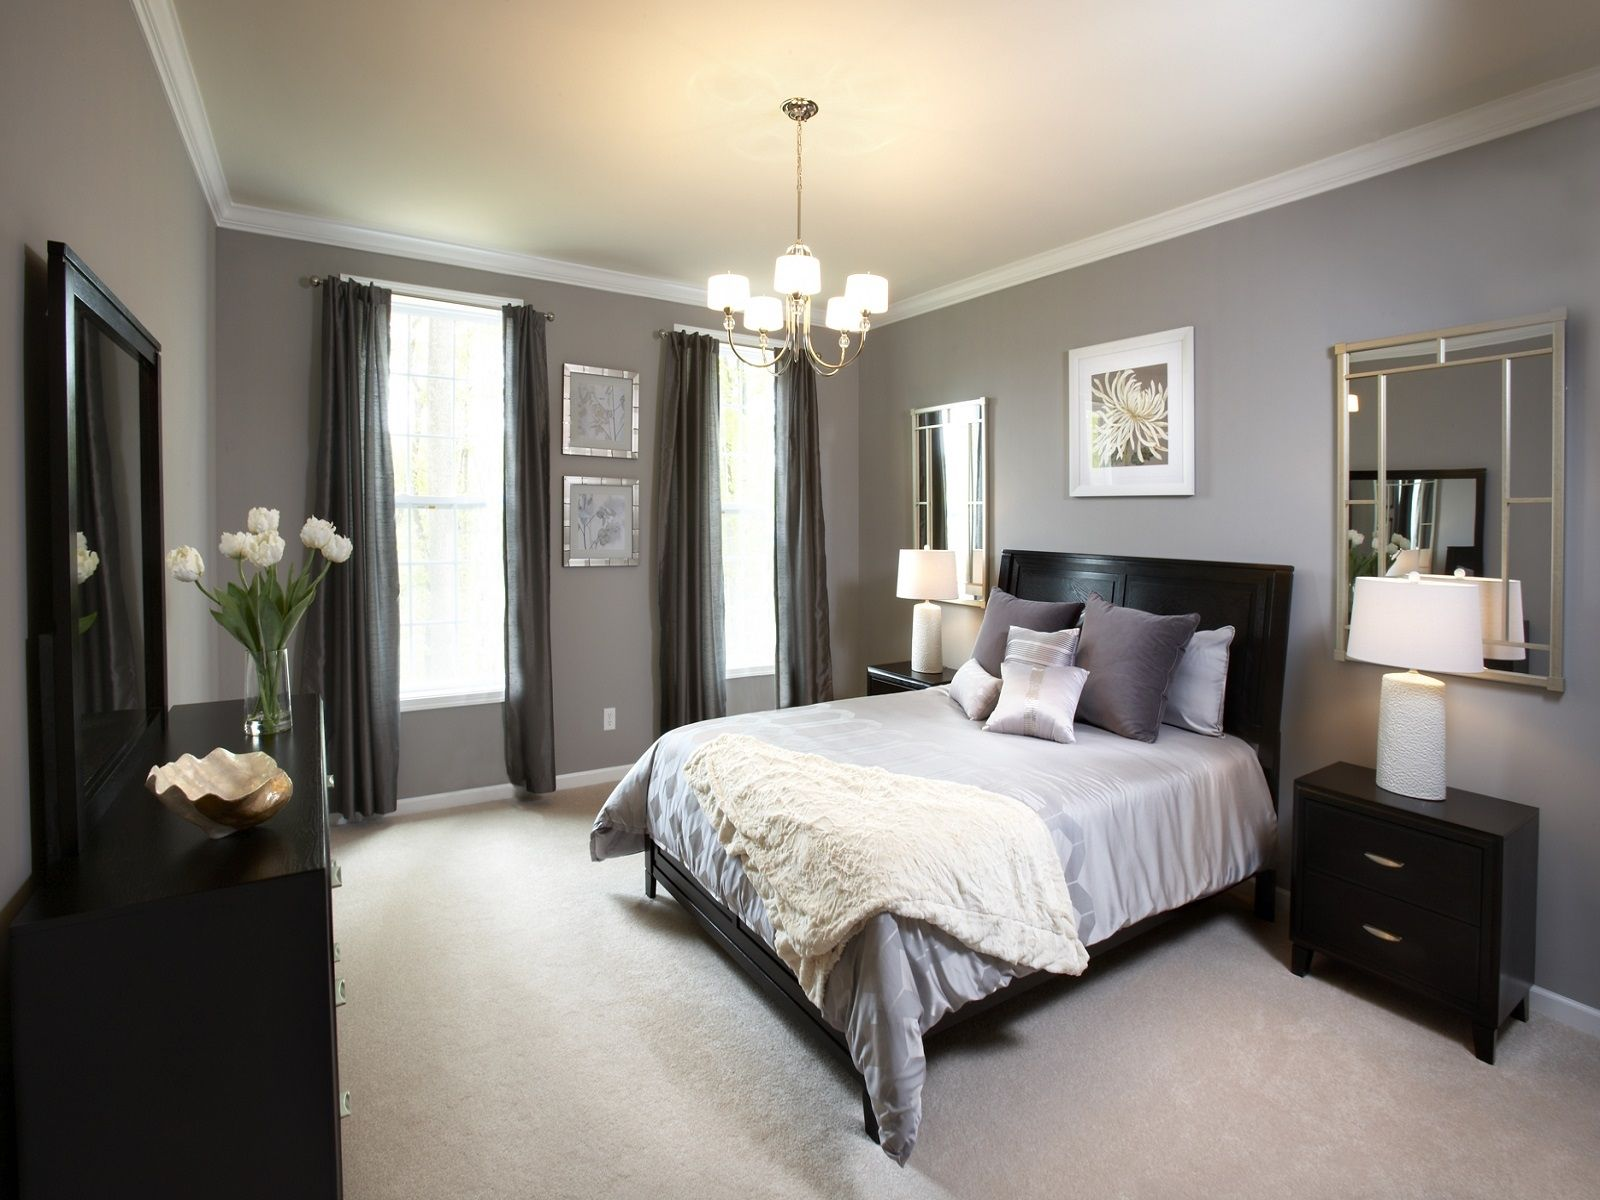 Bedroom Color Decorating Ideas Part - 39: Master Bedroom Decorating Ideas